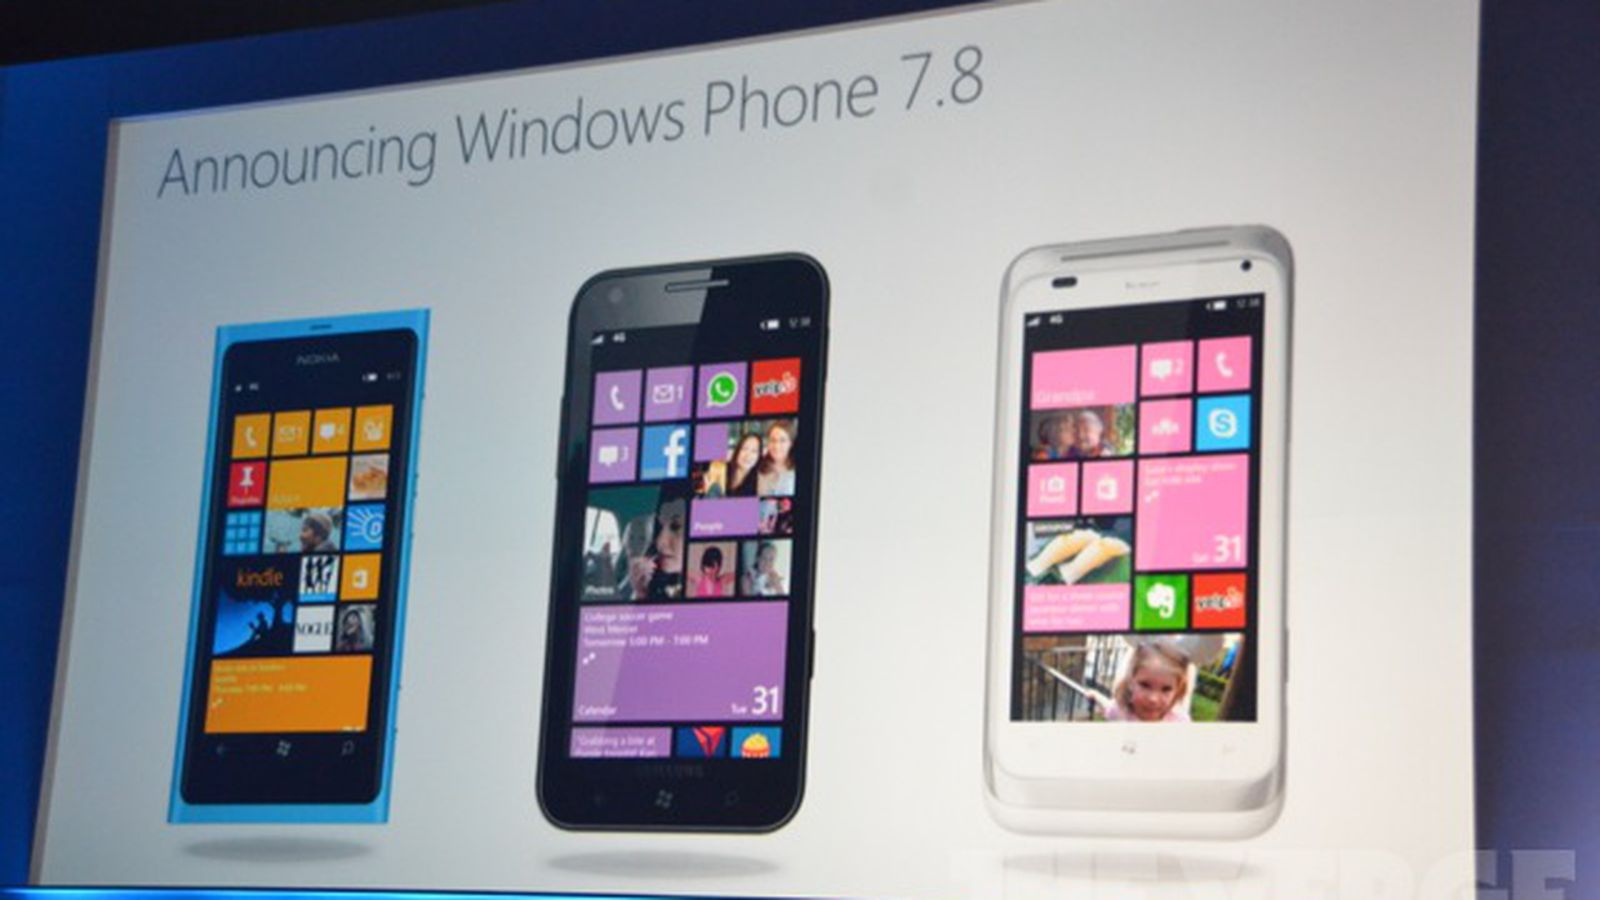 Nokia finally unveils not one but two windows phones the lumia 800 - Microsoft No Upgrades To Windows Phone 8 But Some Features Will Come In Windows Phone 7 8